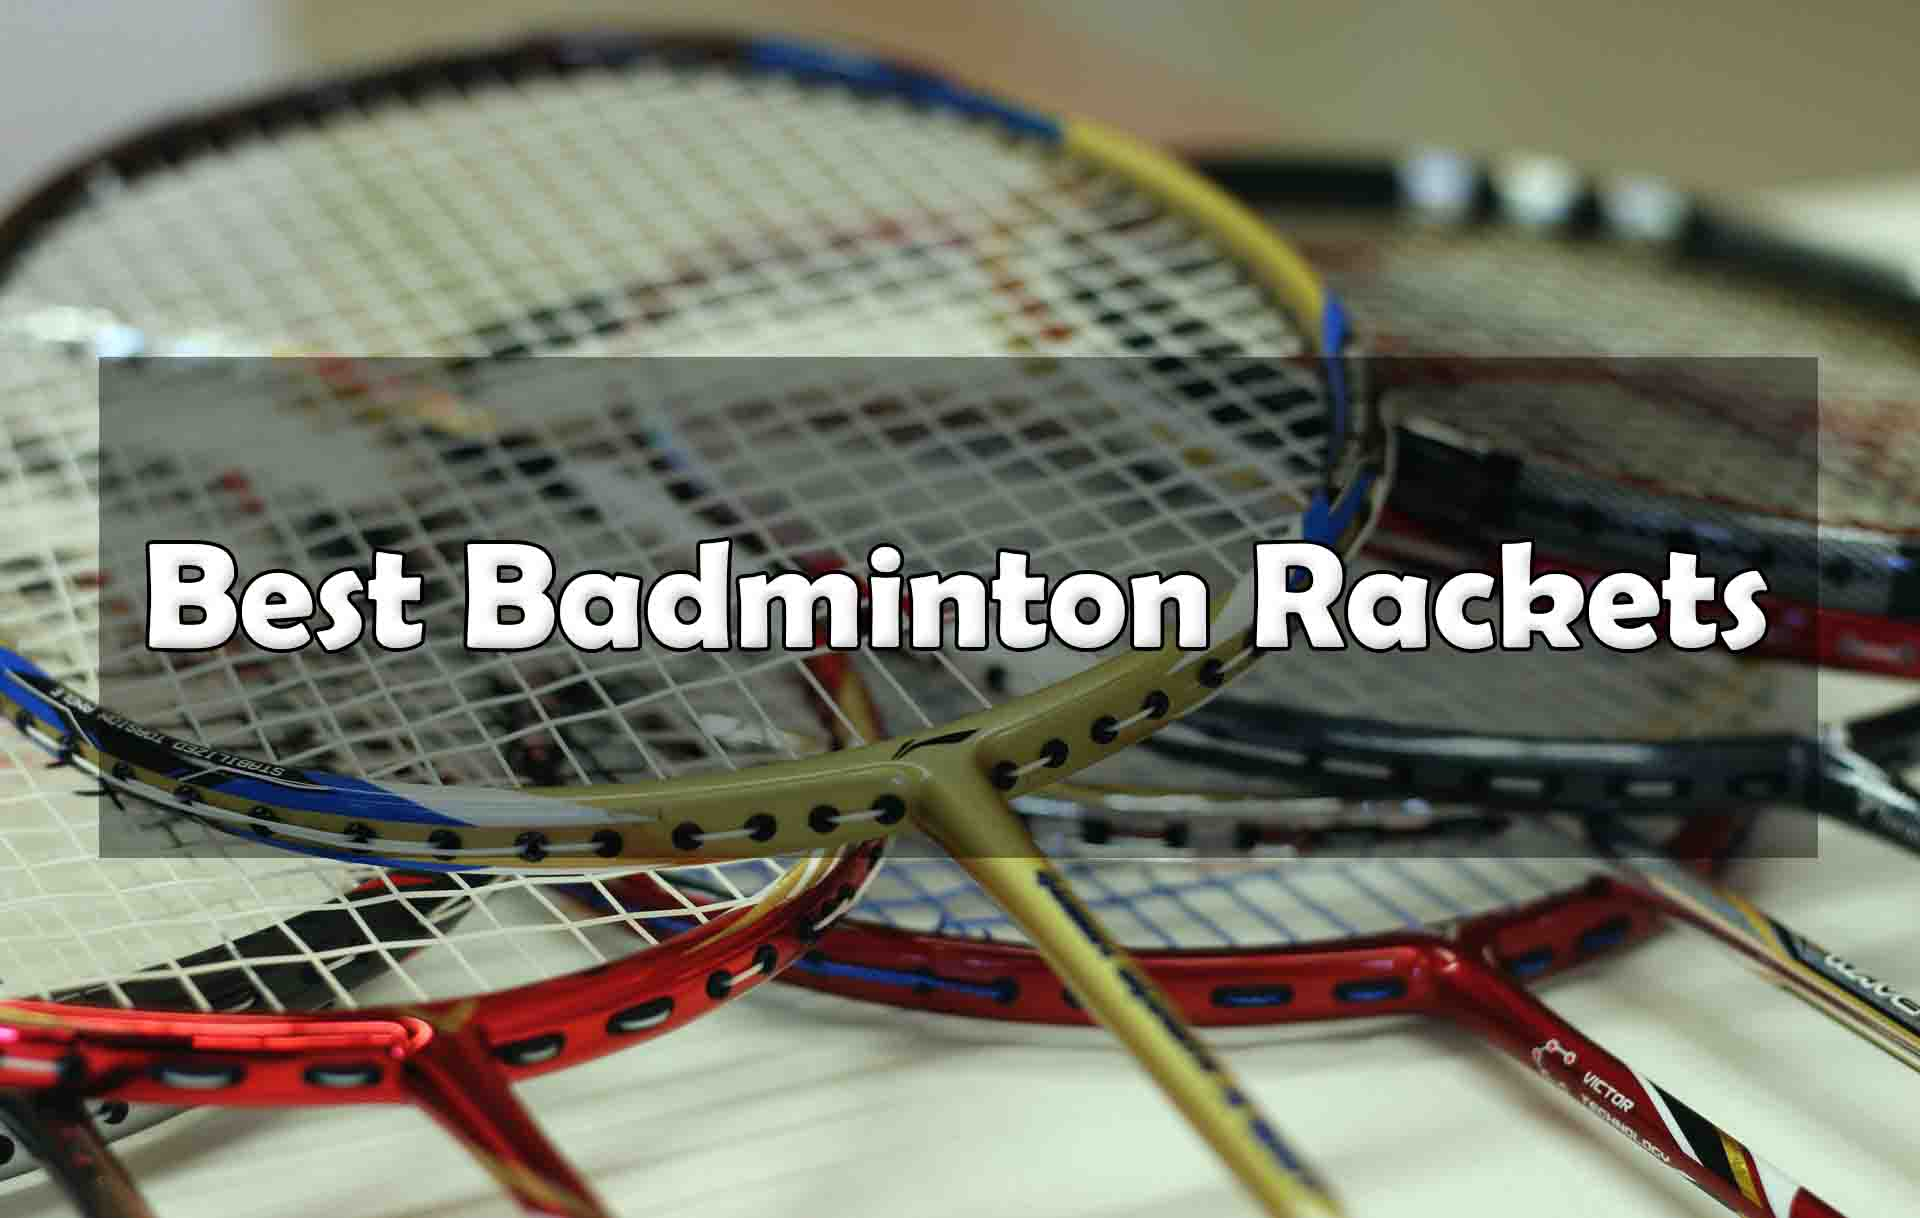 Best Badminton Racket In India